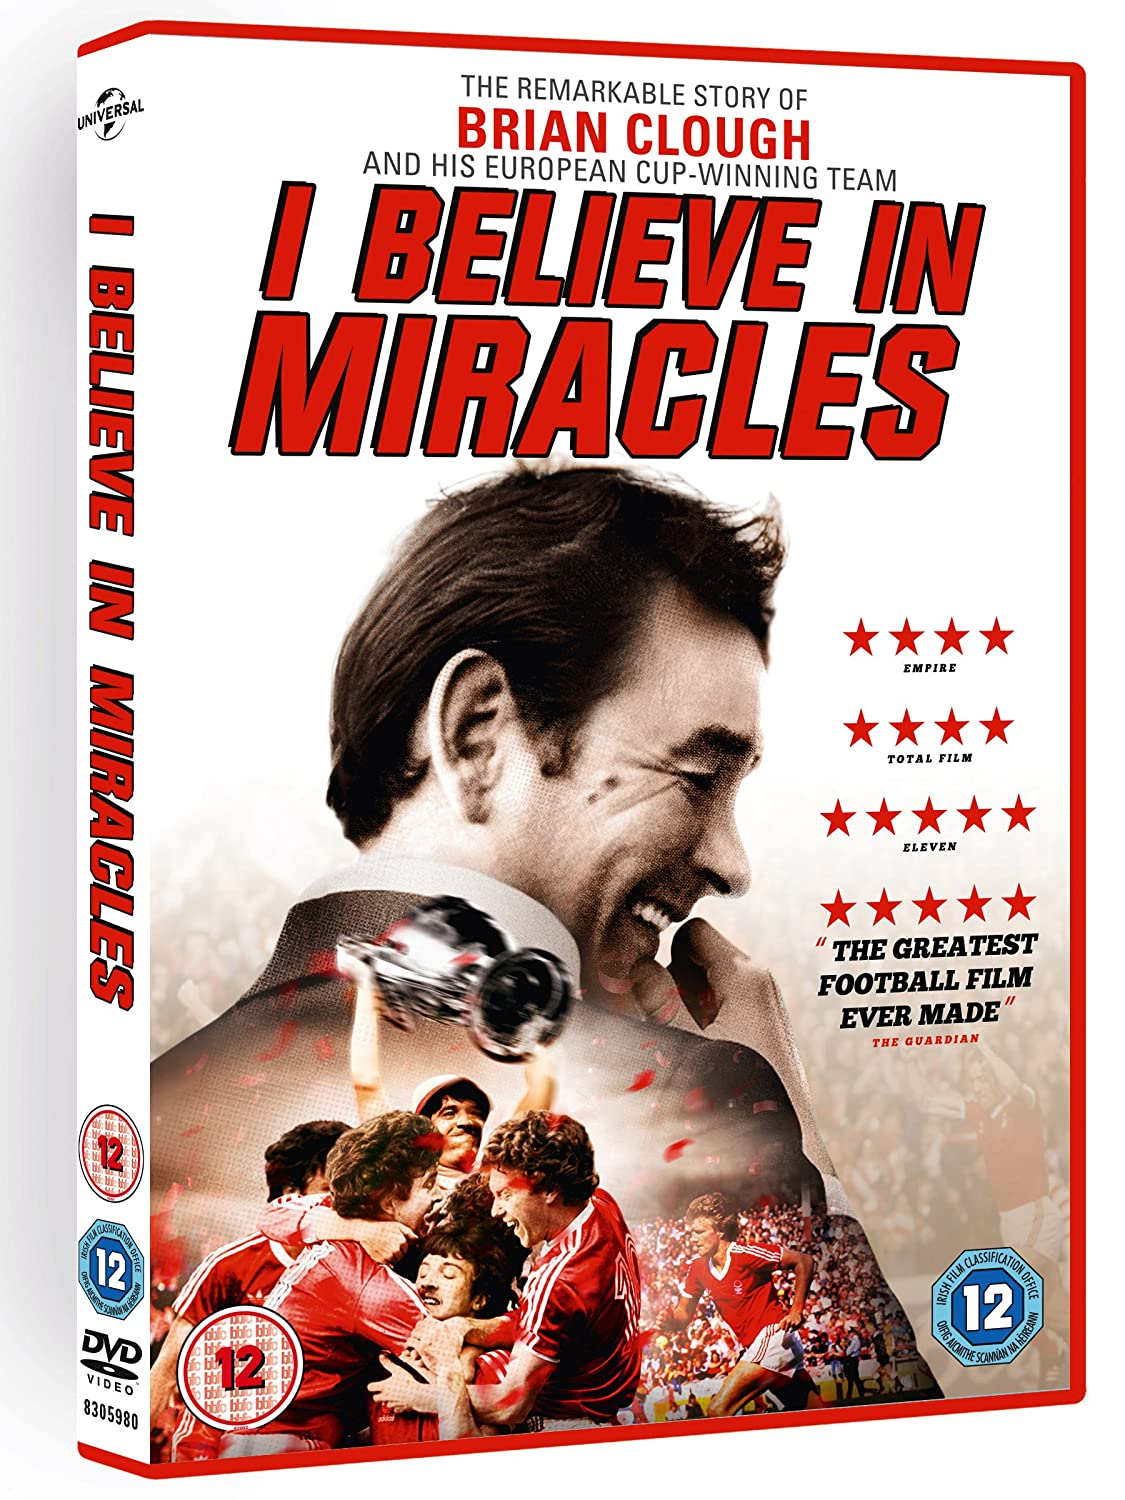 Brian Clough: I Believe in Miracles [DVD] [2015]: Amazon.co.uk ...